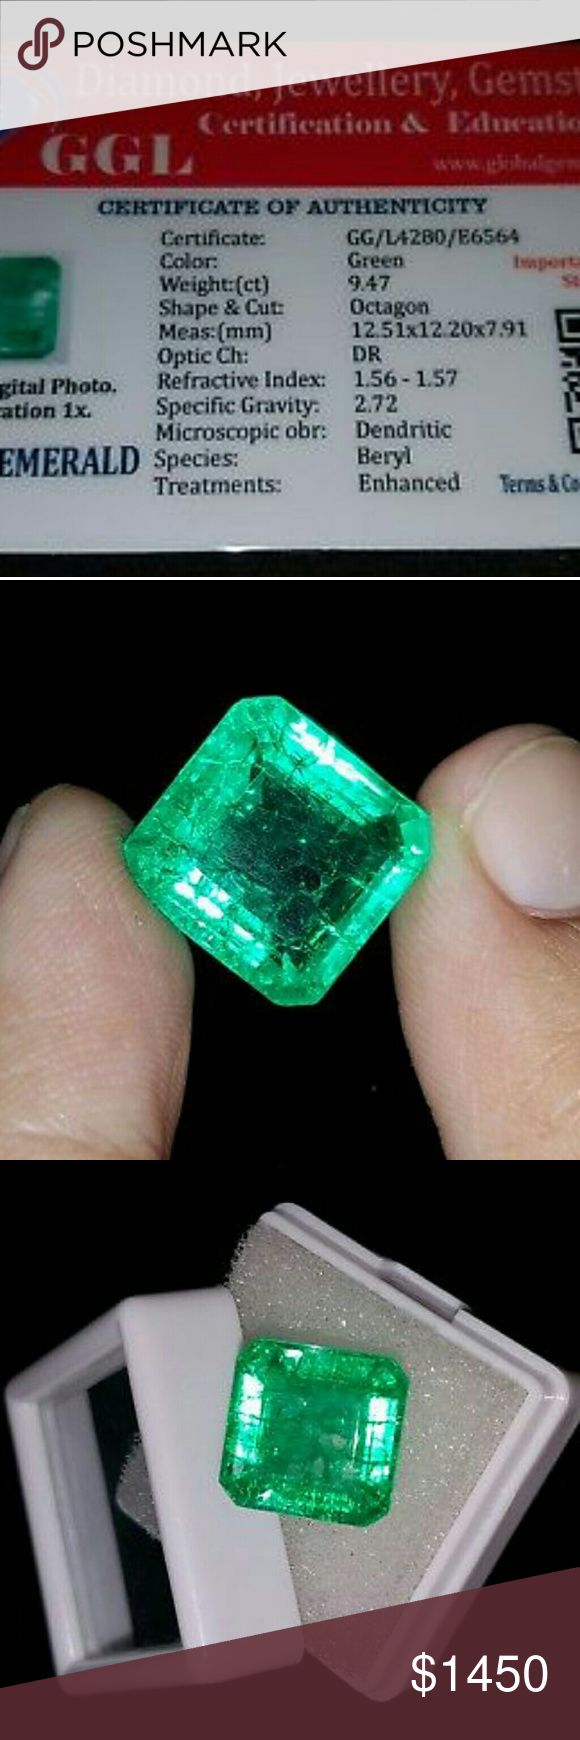 Elegant 9.47 Ct Certified Square Shape Colombian E Shape: Square Cut Grade: Excellent Length: 12.51 mm Certificate: GGL Width: 12.20 mm Country of Origin: Colombia Depth: 7.91 mm Color: Green Total Carat Weight (TCW): 9.47 Ct Country/Region of Manufacture: India Treatment: Enhanced Natural/Lab-Created: Natural According to the International Gem Society, clean, top-color gems command a retail price of $1,000 to $3,000 per carat. Jewelry